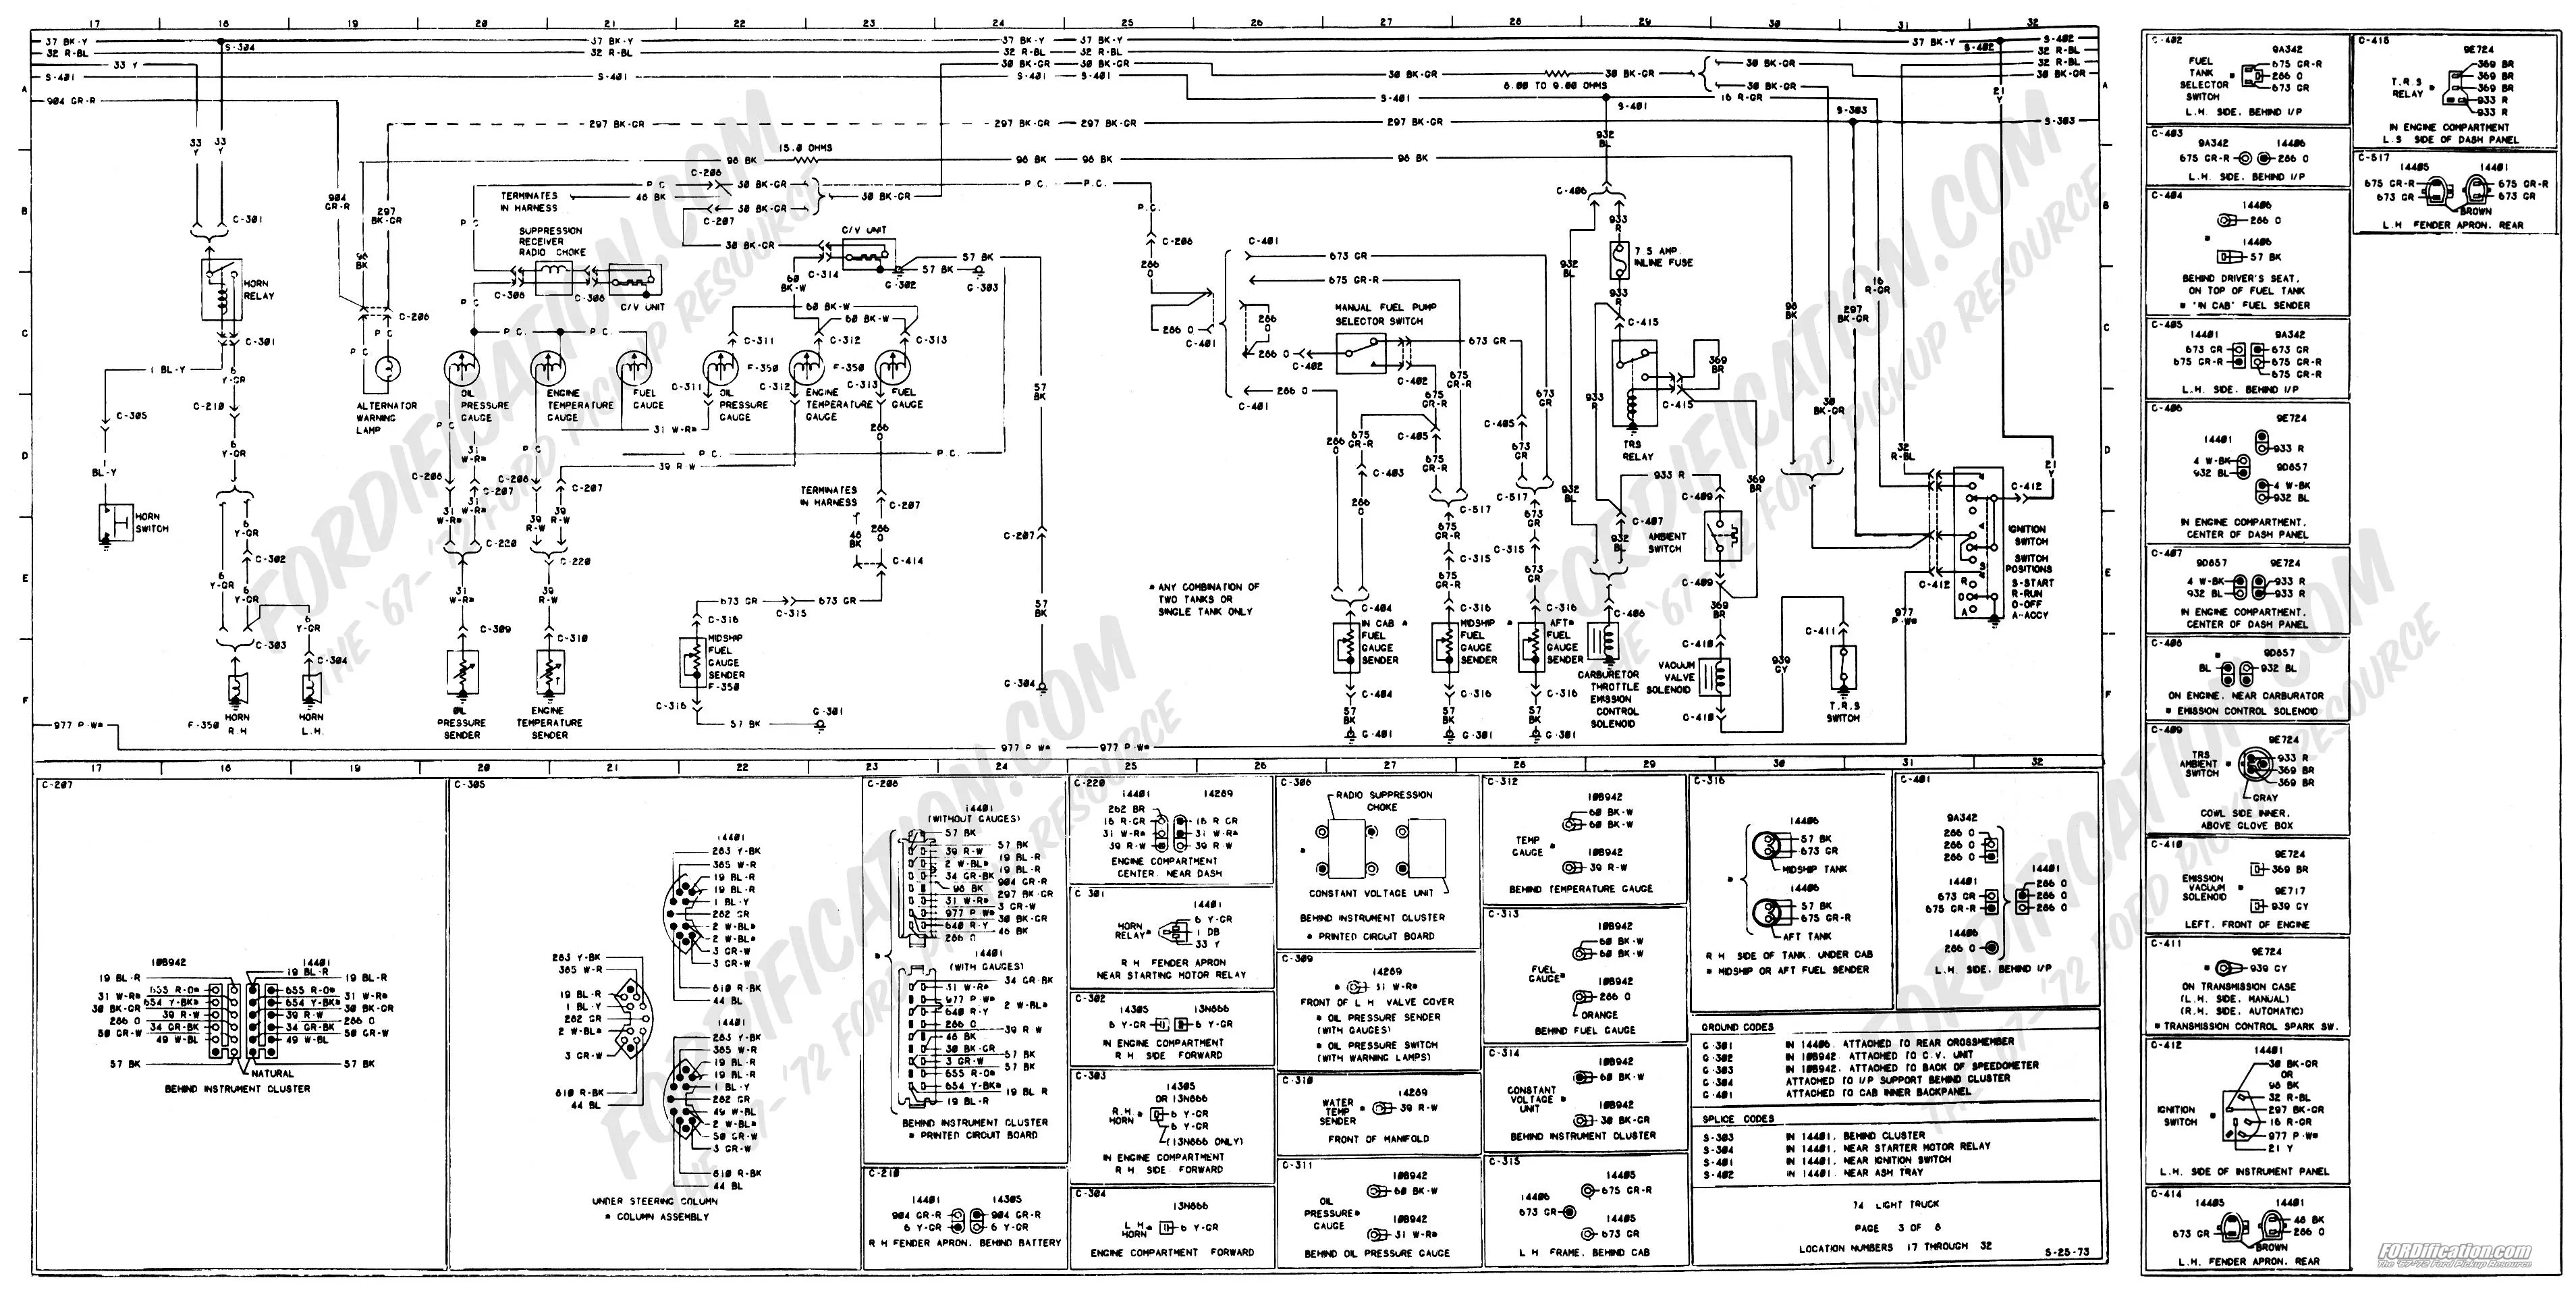 1979 Ford F150 Ignition Wiring Diagram 1977 Ford F150 Ignition